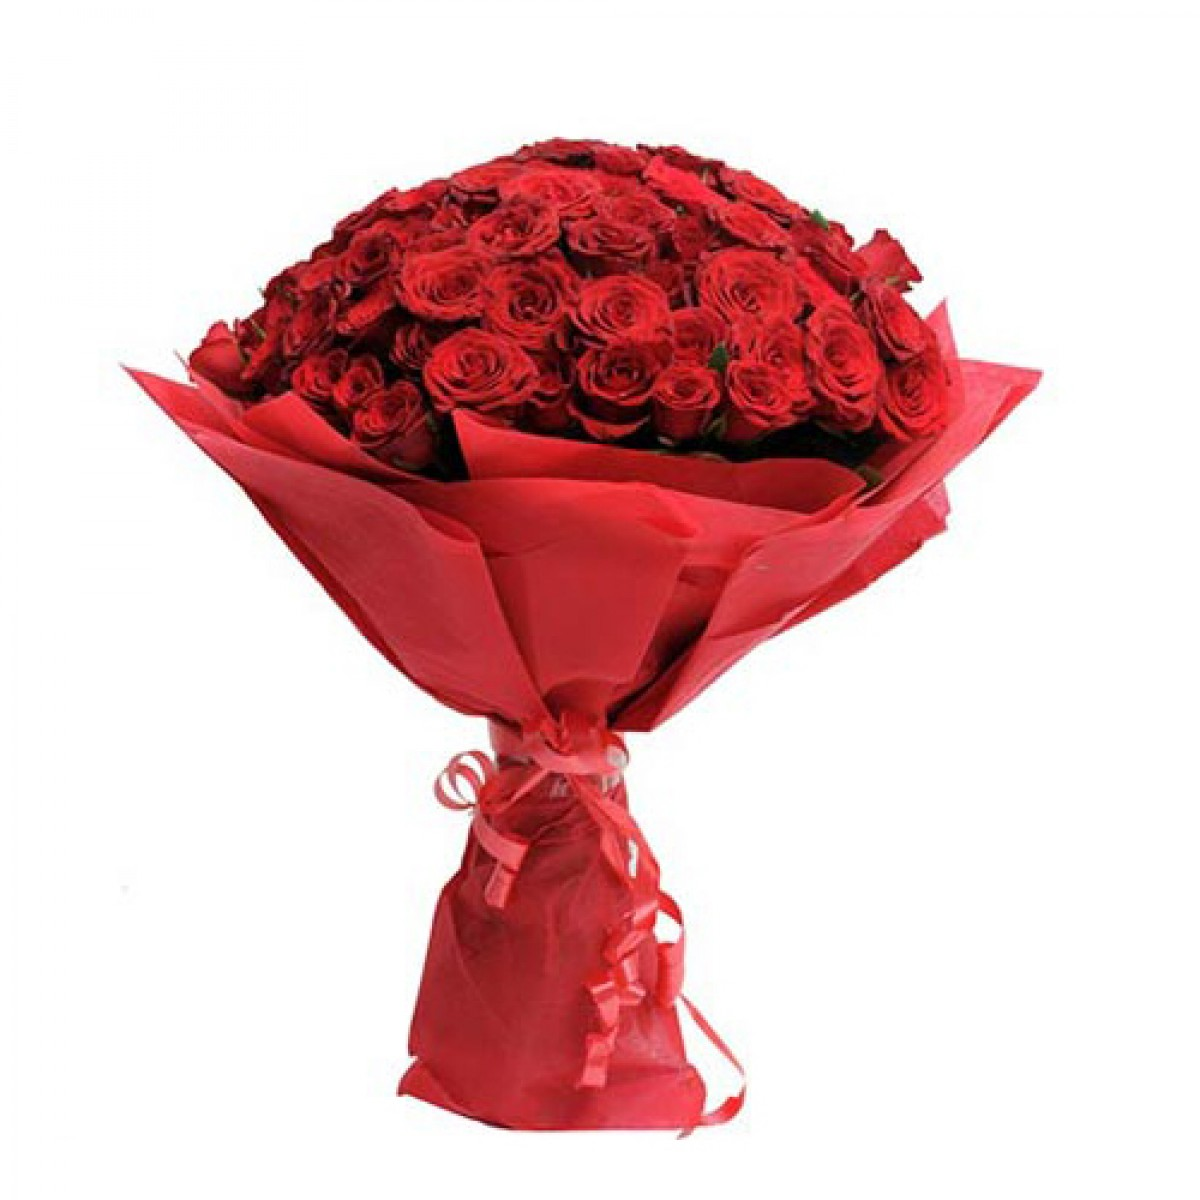 40 Red Roses Fancy Round Bouquet With Red Paper Packing J K Florist